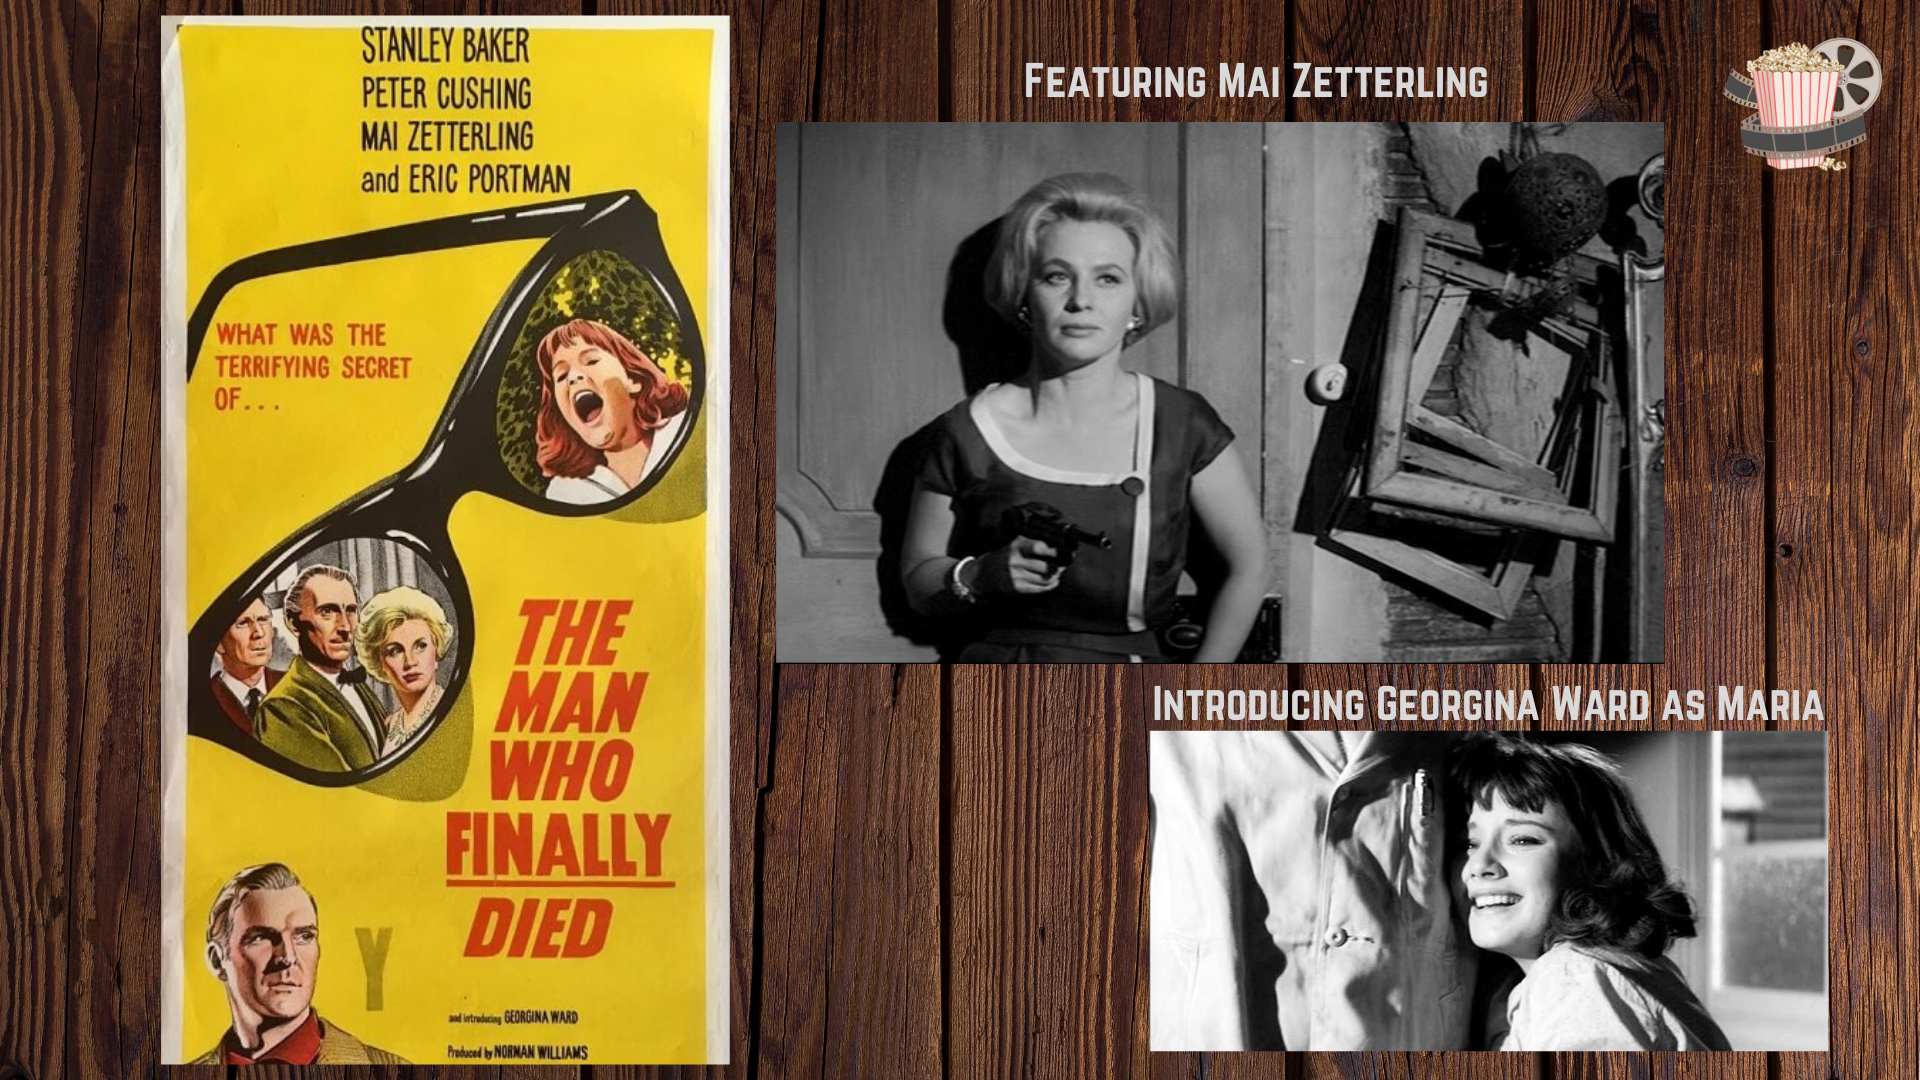 Stanley Baker Mystery Thriller Man Who Finally Died